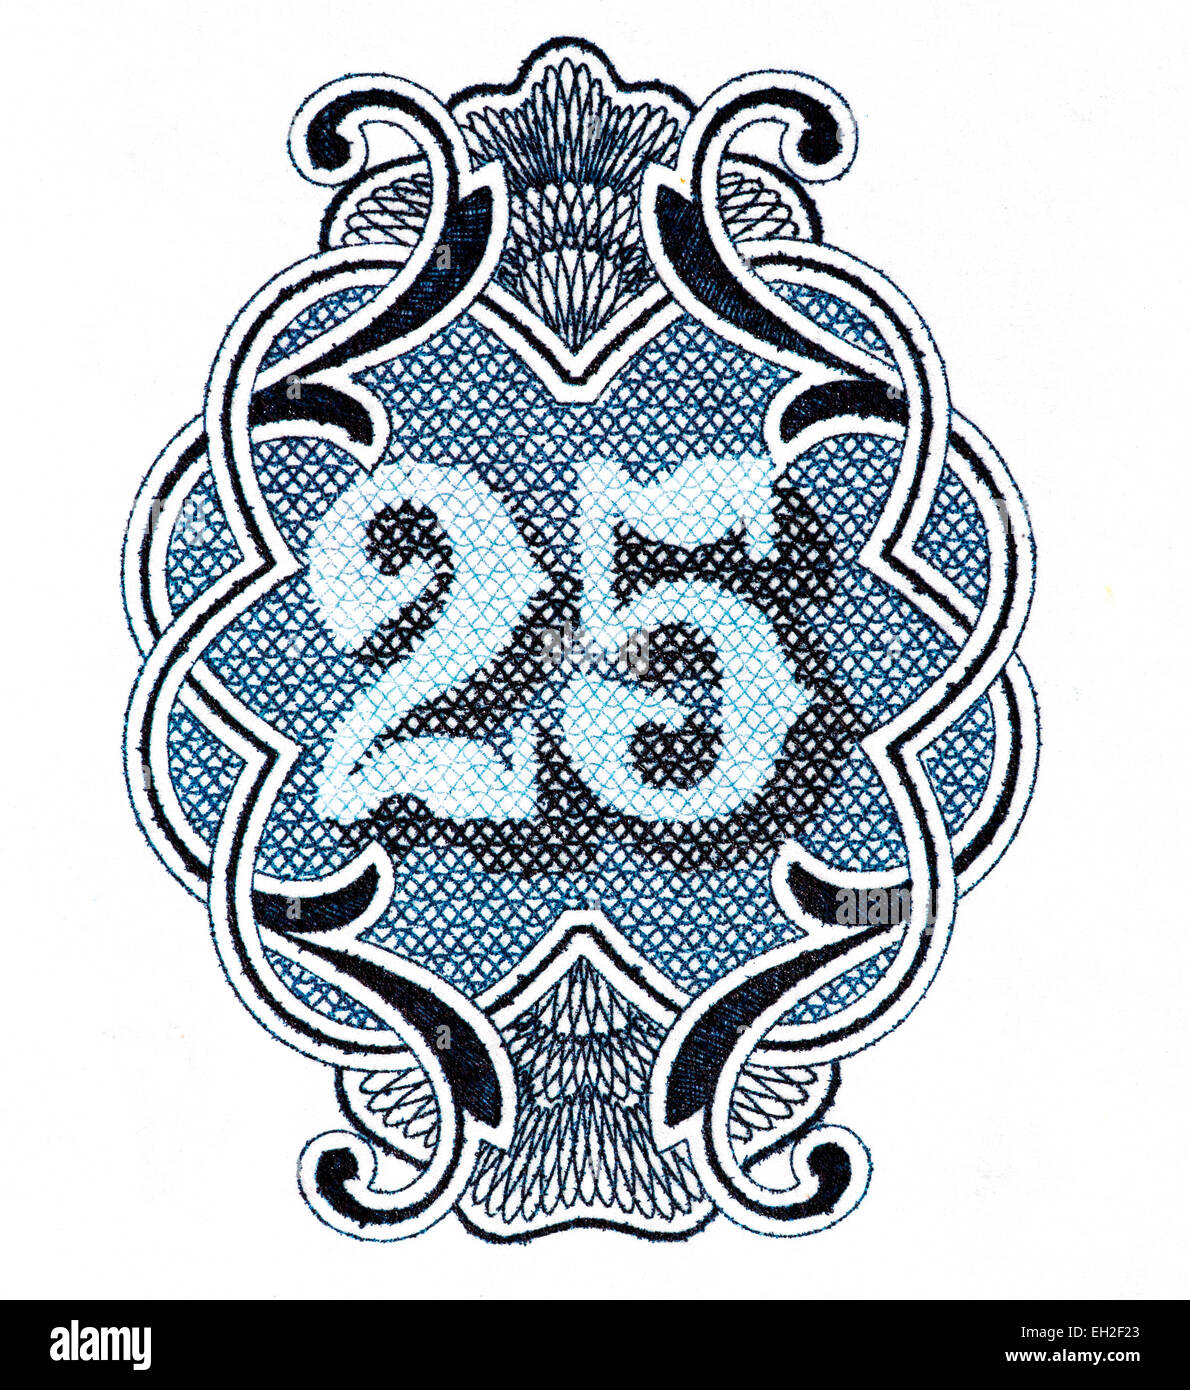 25 numeral from 25 leva banknote, Bulgaria, 1951 - Stock Image